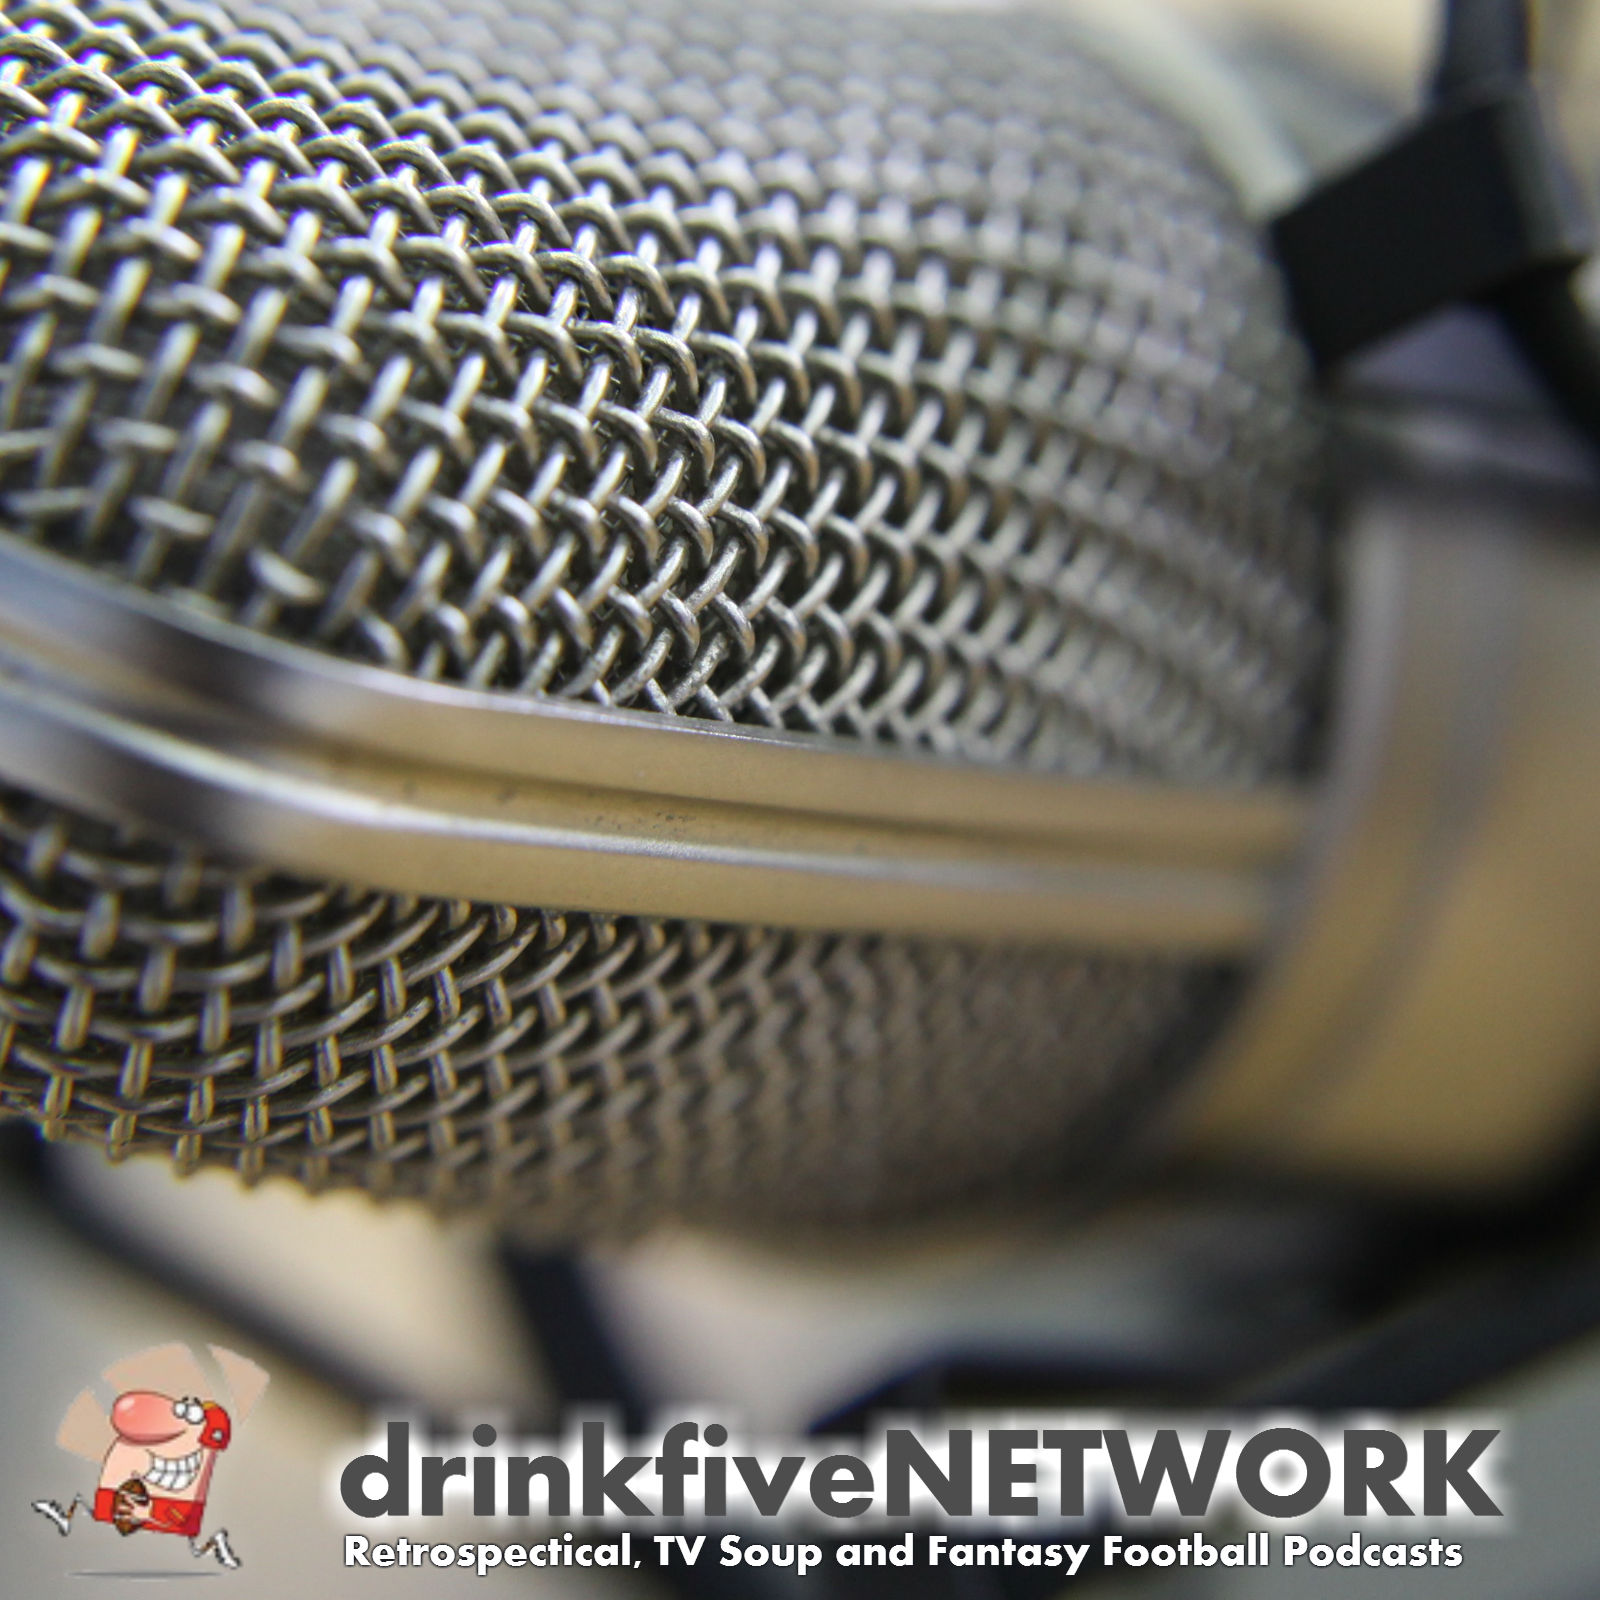 drinkfiveNETWORK | Podcasts